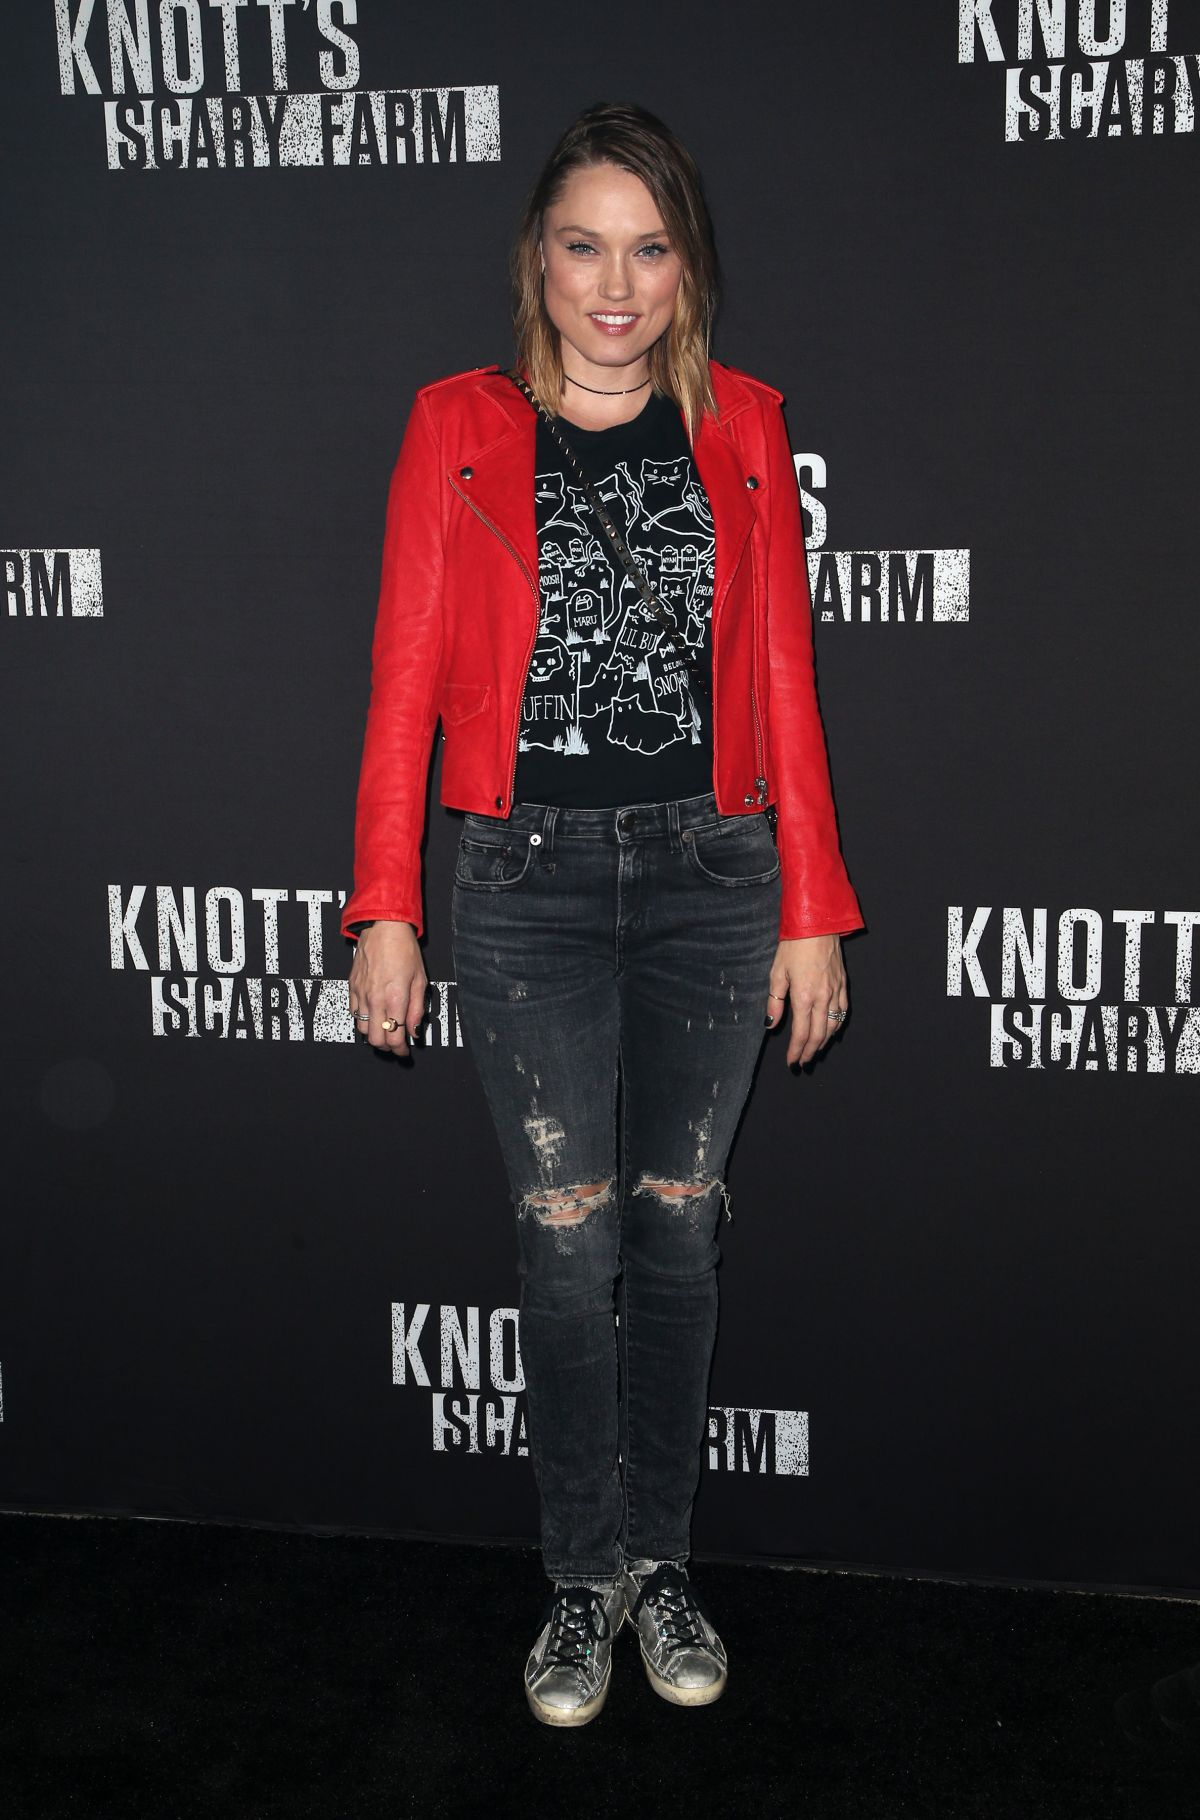 Clare grant knotts scary farm celebrity night in buena park nudes (24 photo), Is a cute Celebrites pic